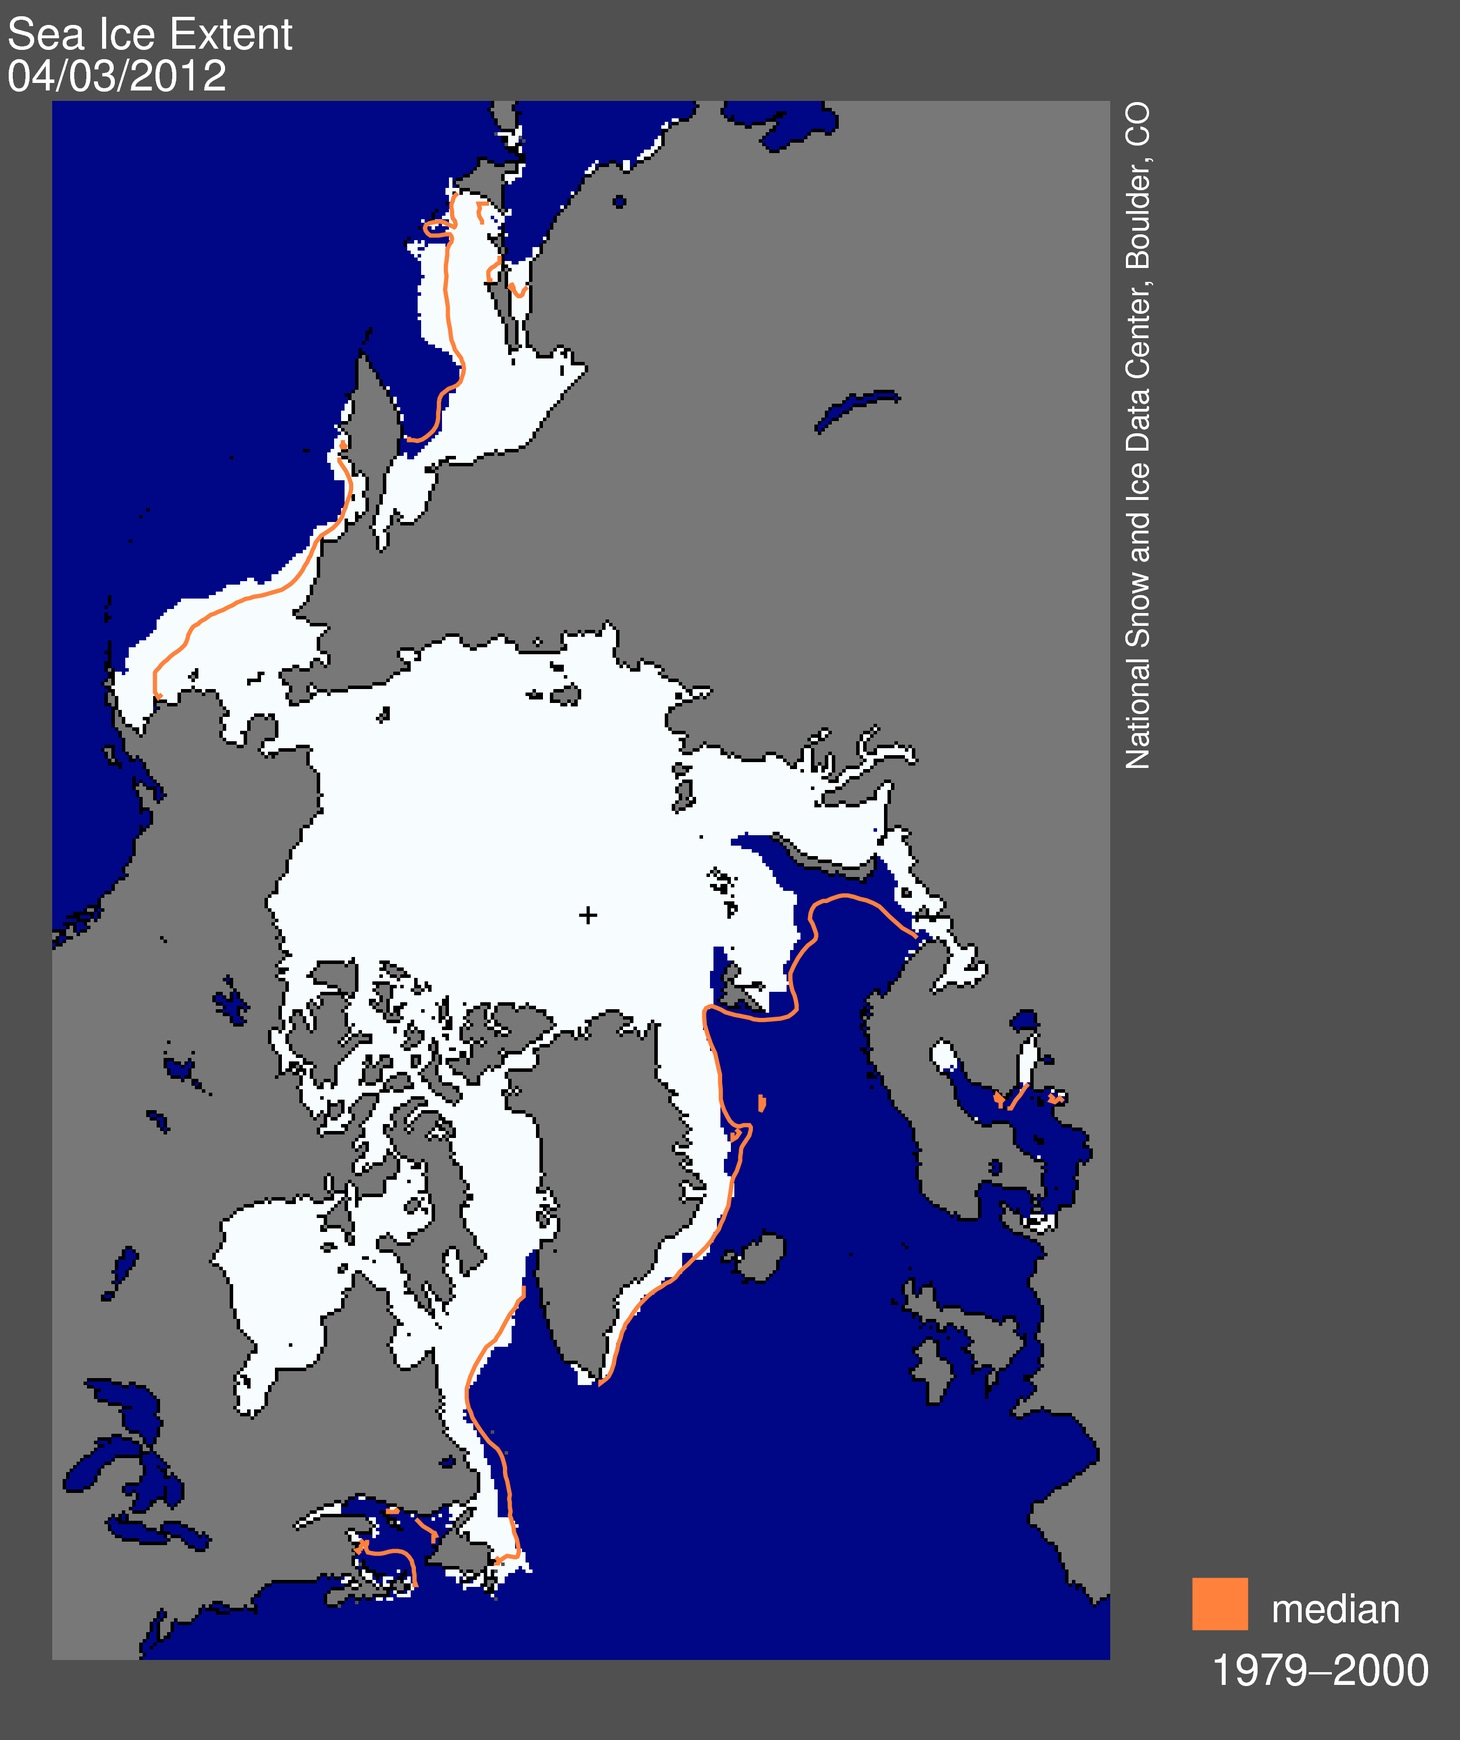 Arctic sea ice extent in March 2012 averaged 15.21 million square kilometres. The magenta line shows the 1979 to 2000 median extent for that month. The black cross indicates the geographic North Pole. (IMAGE COURTESY OF THE NSIDC)